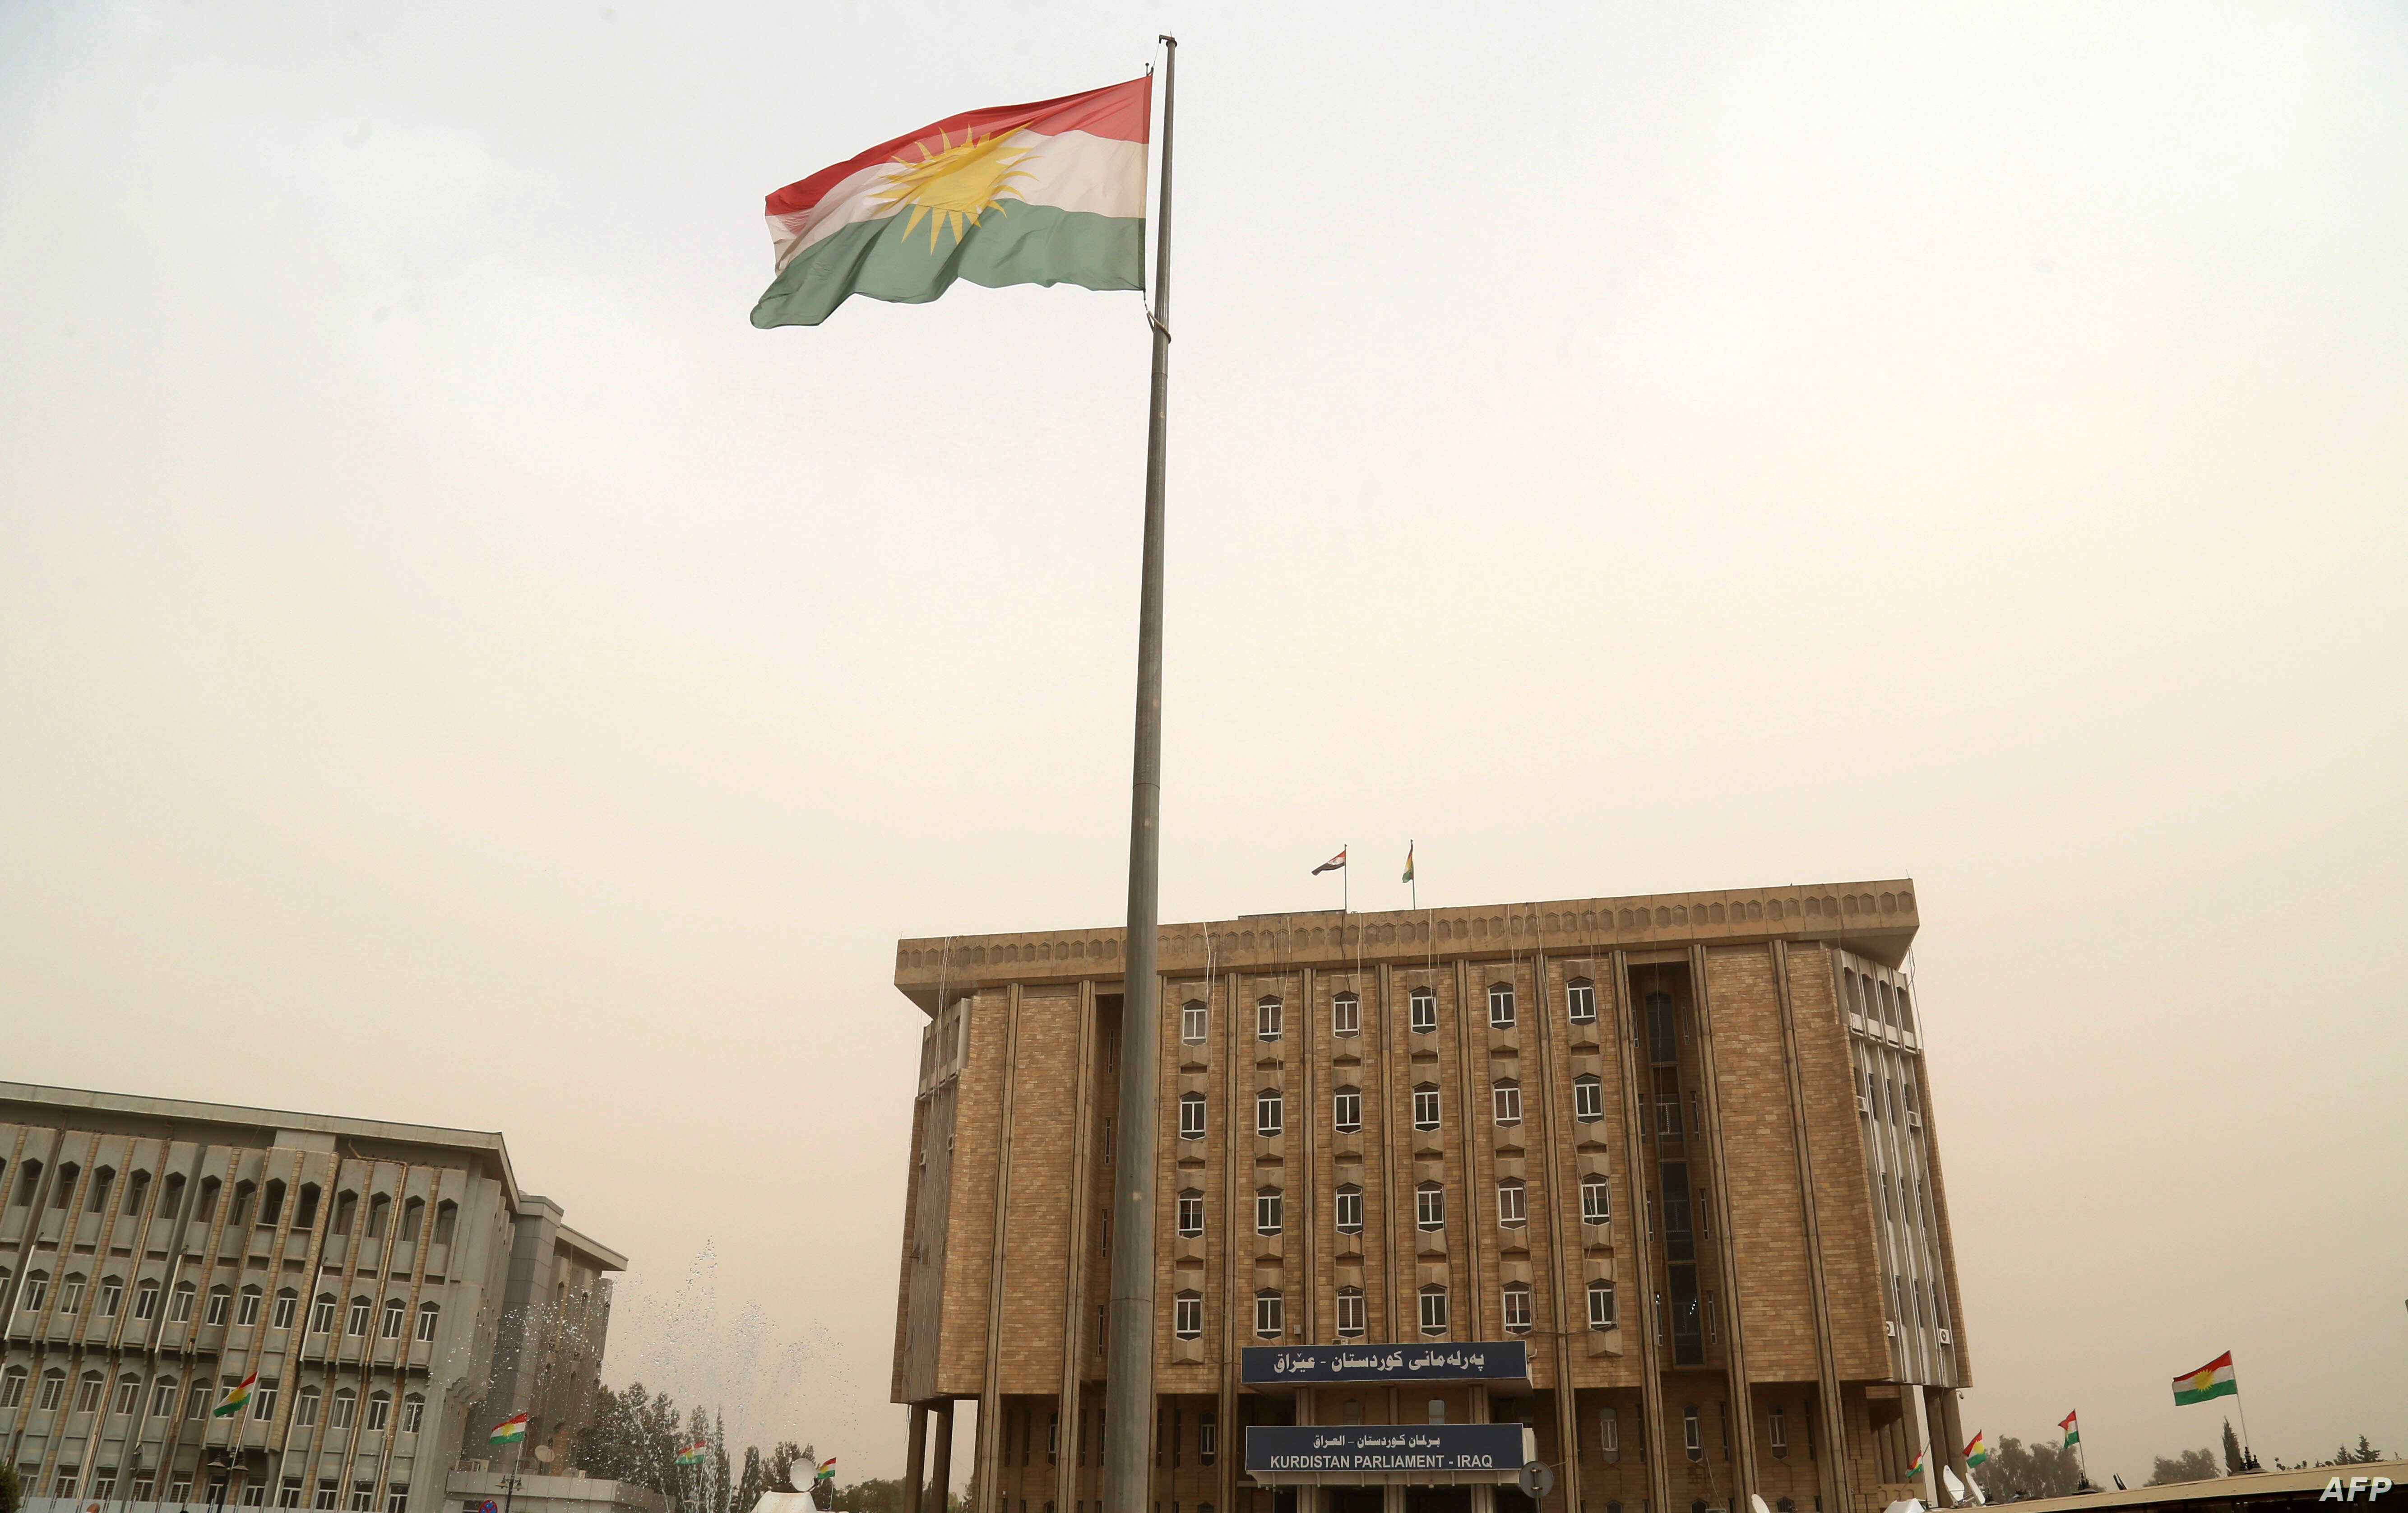 The parliament building of Iraq's Kurdistan region is seen in Irbil, northern Iraq, Oct. 29, 2017. Angry Kurds stormed the building Sunday after Iraqi Kurdish leader Masoud Barzani announced he was stepping down as president of the self-ruled region....